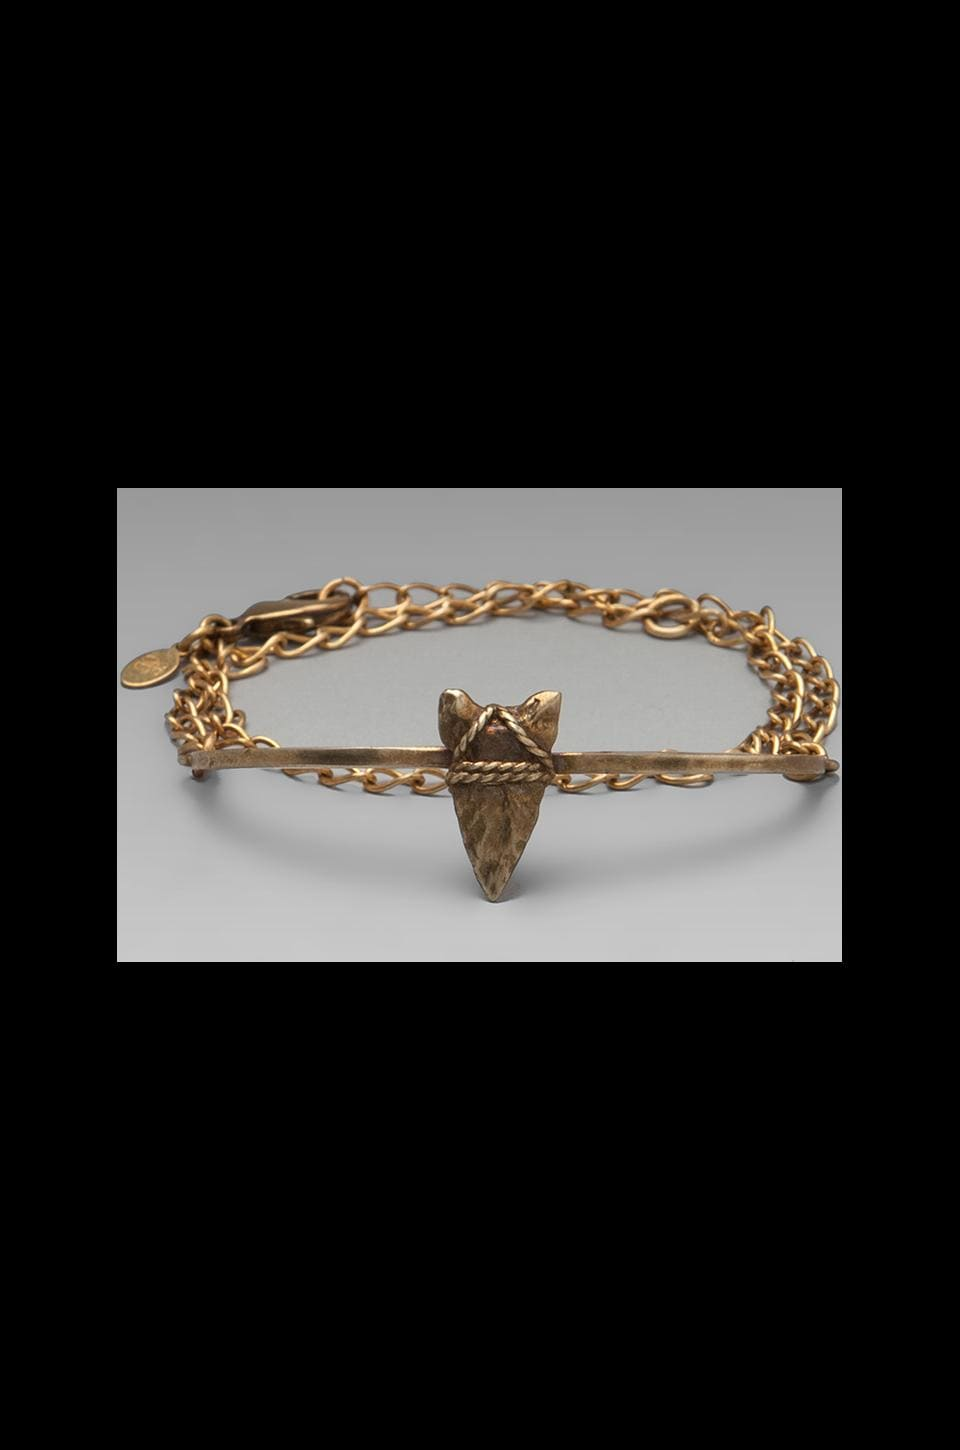 Bing Bang Brave Arrow Wrap Chain Bracelet in Brass